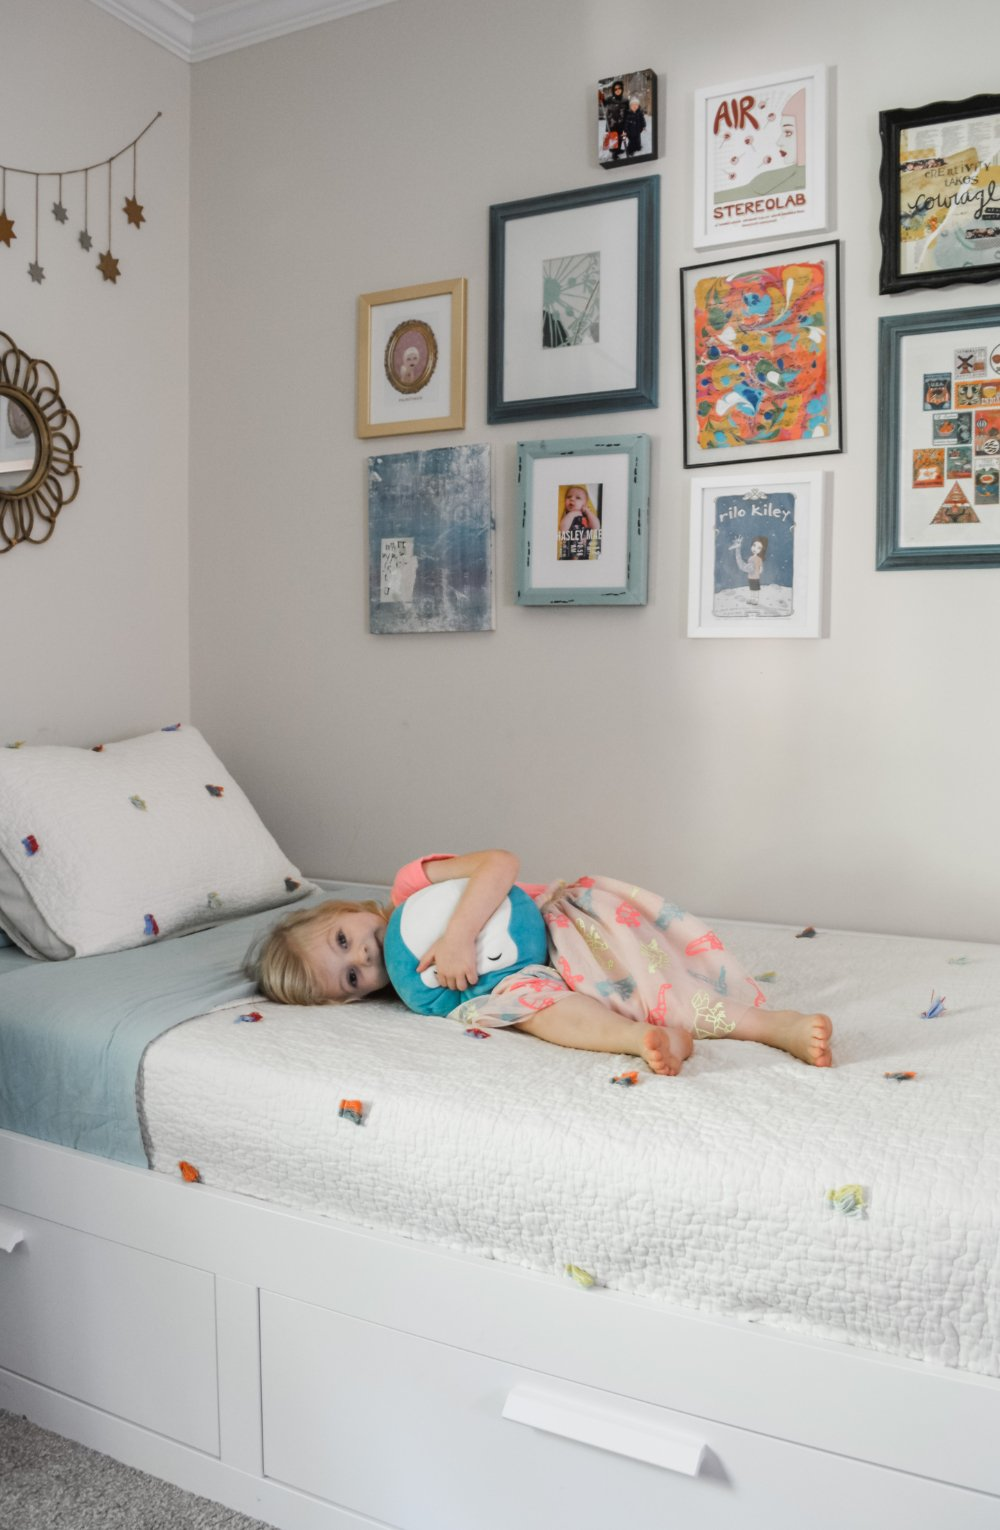 How to design a bedroom for a 3-year-old girl